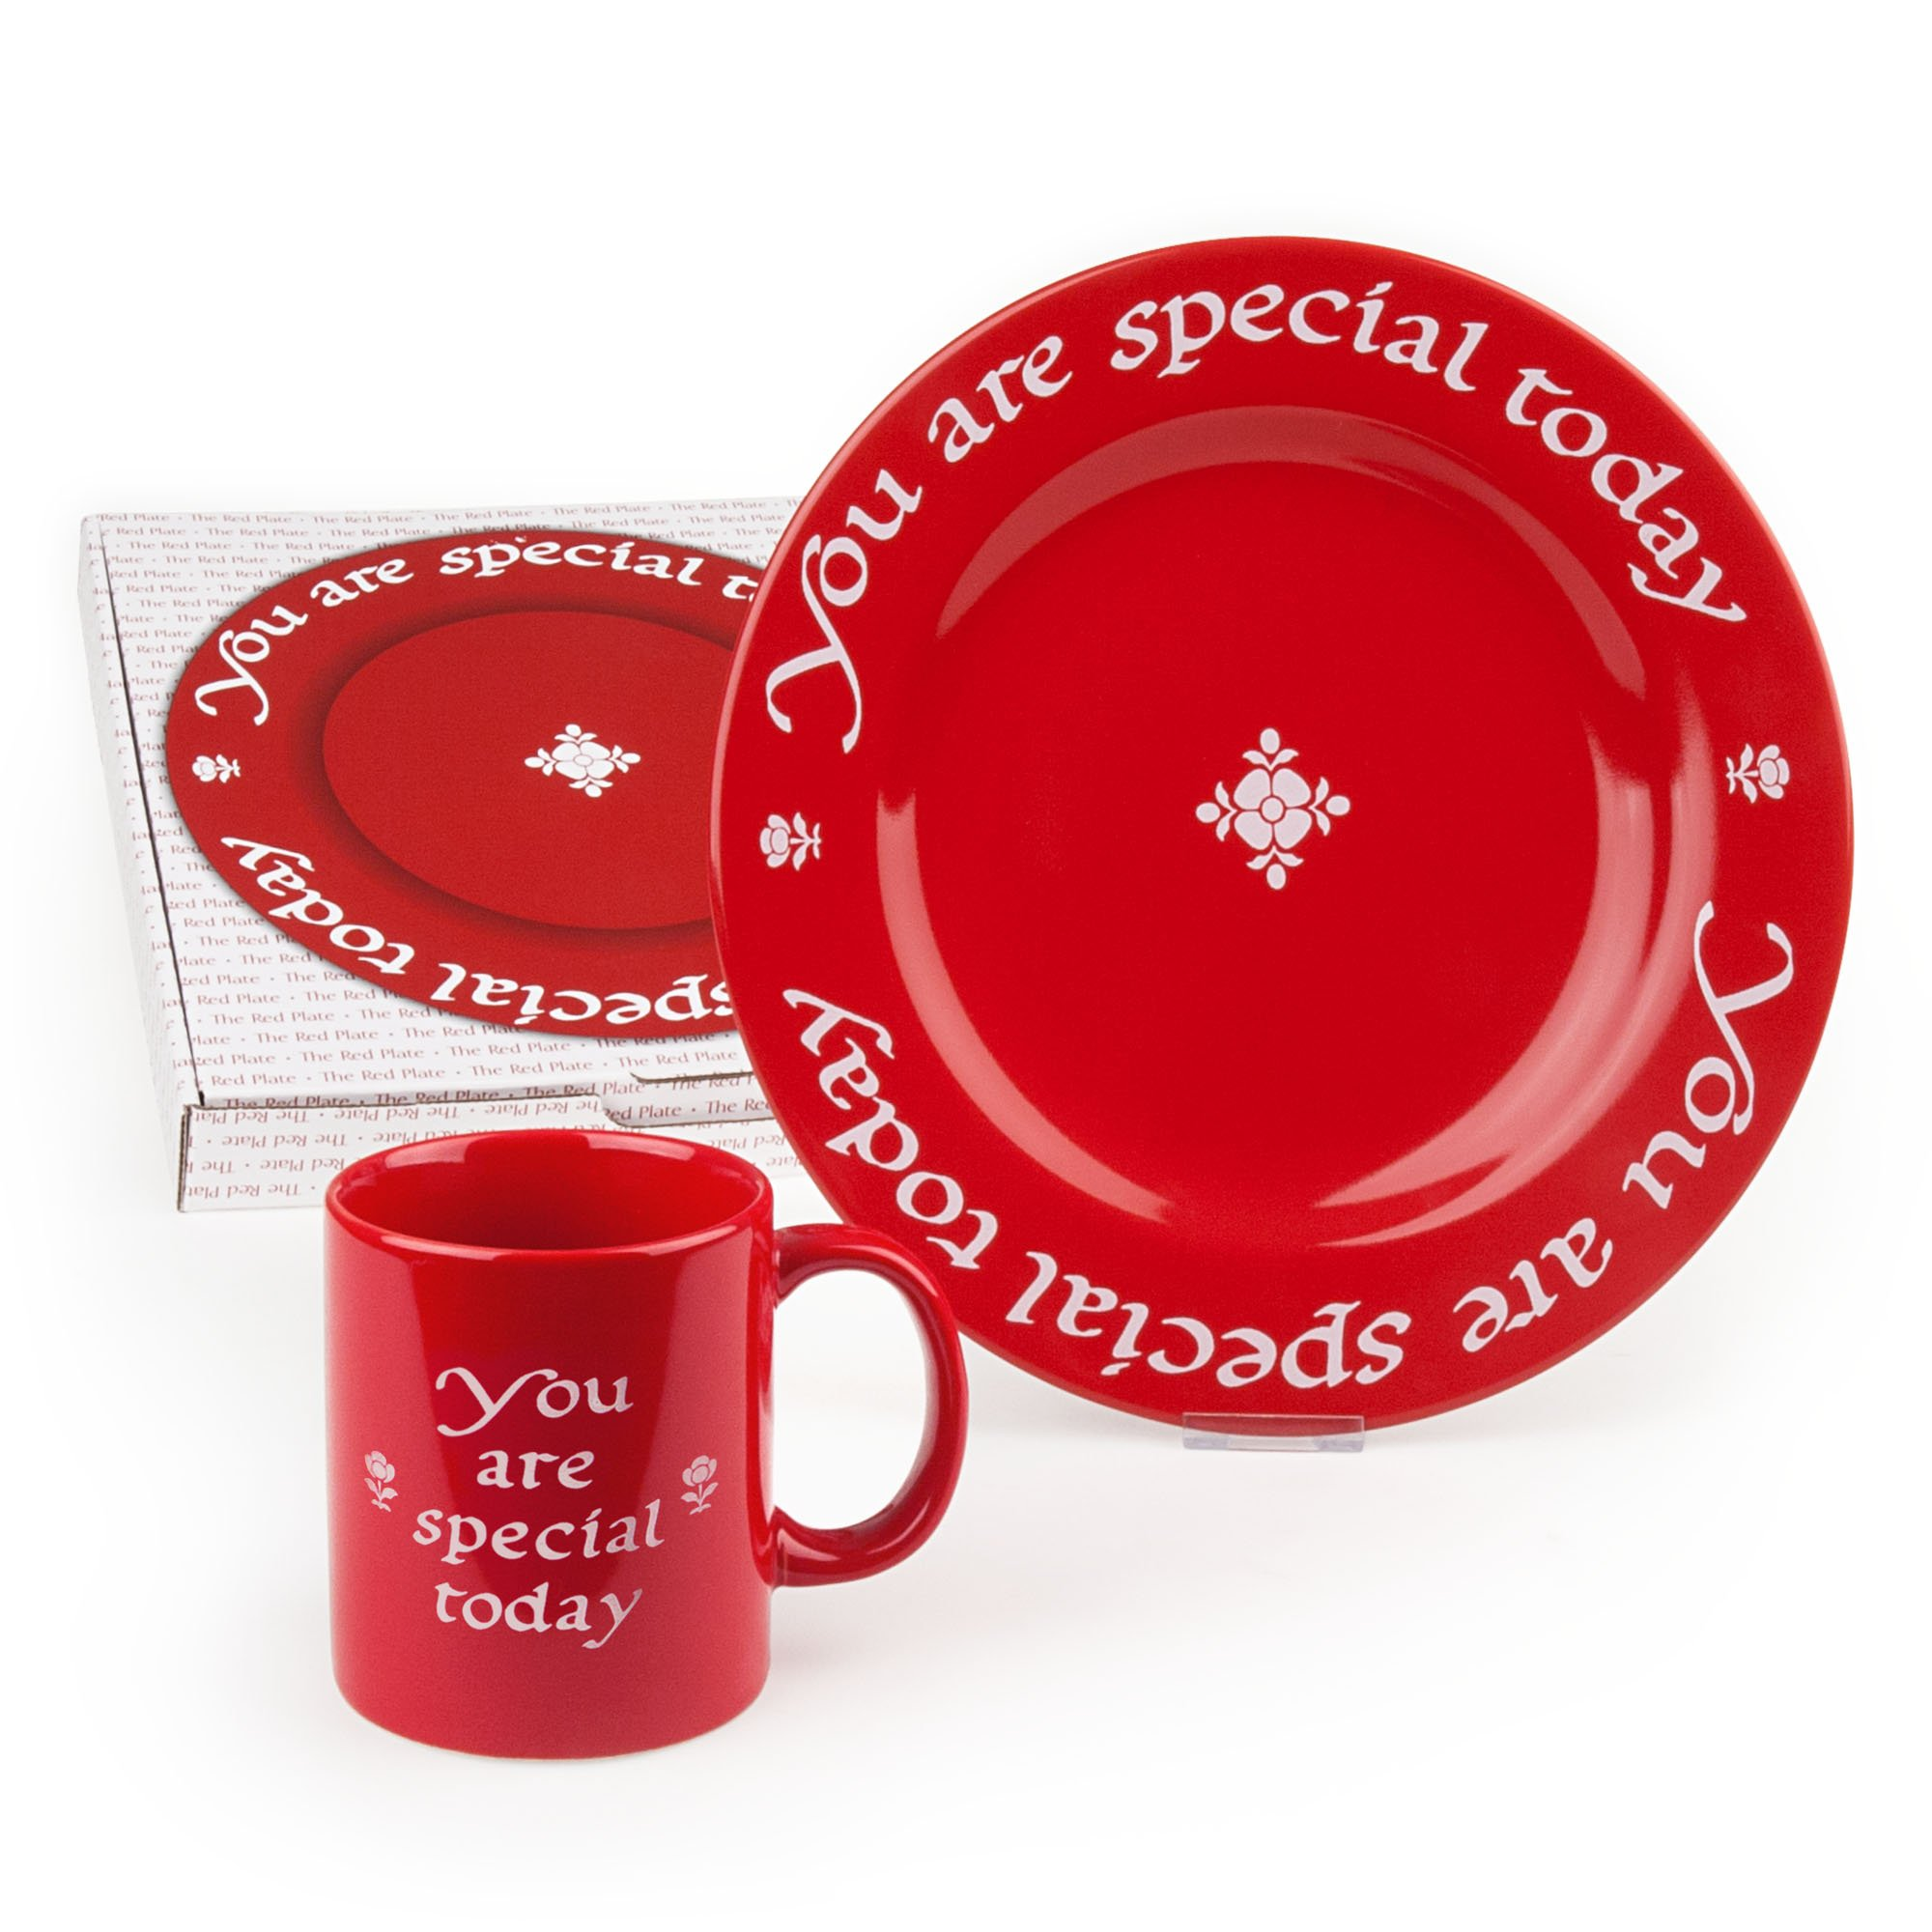 Red plate and matching mug  sc 1 st  Red Plate Store & Gold Wrapped Plate and Mug Combo - Red Plate Store